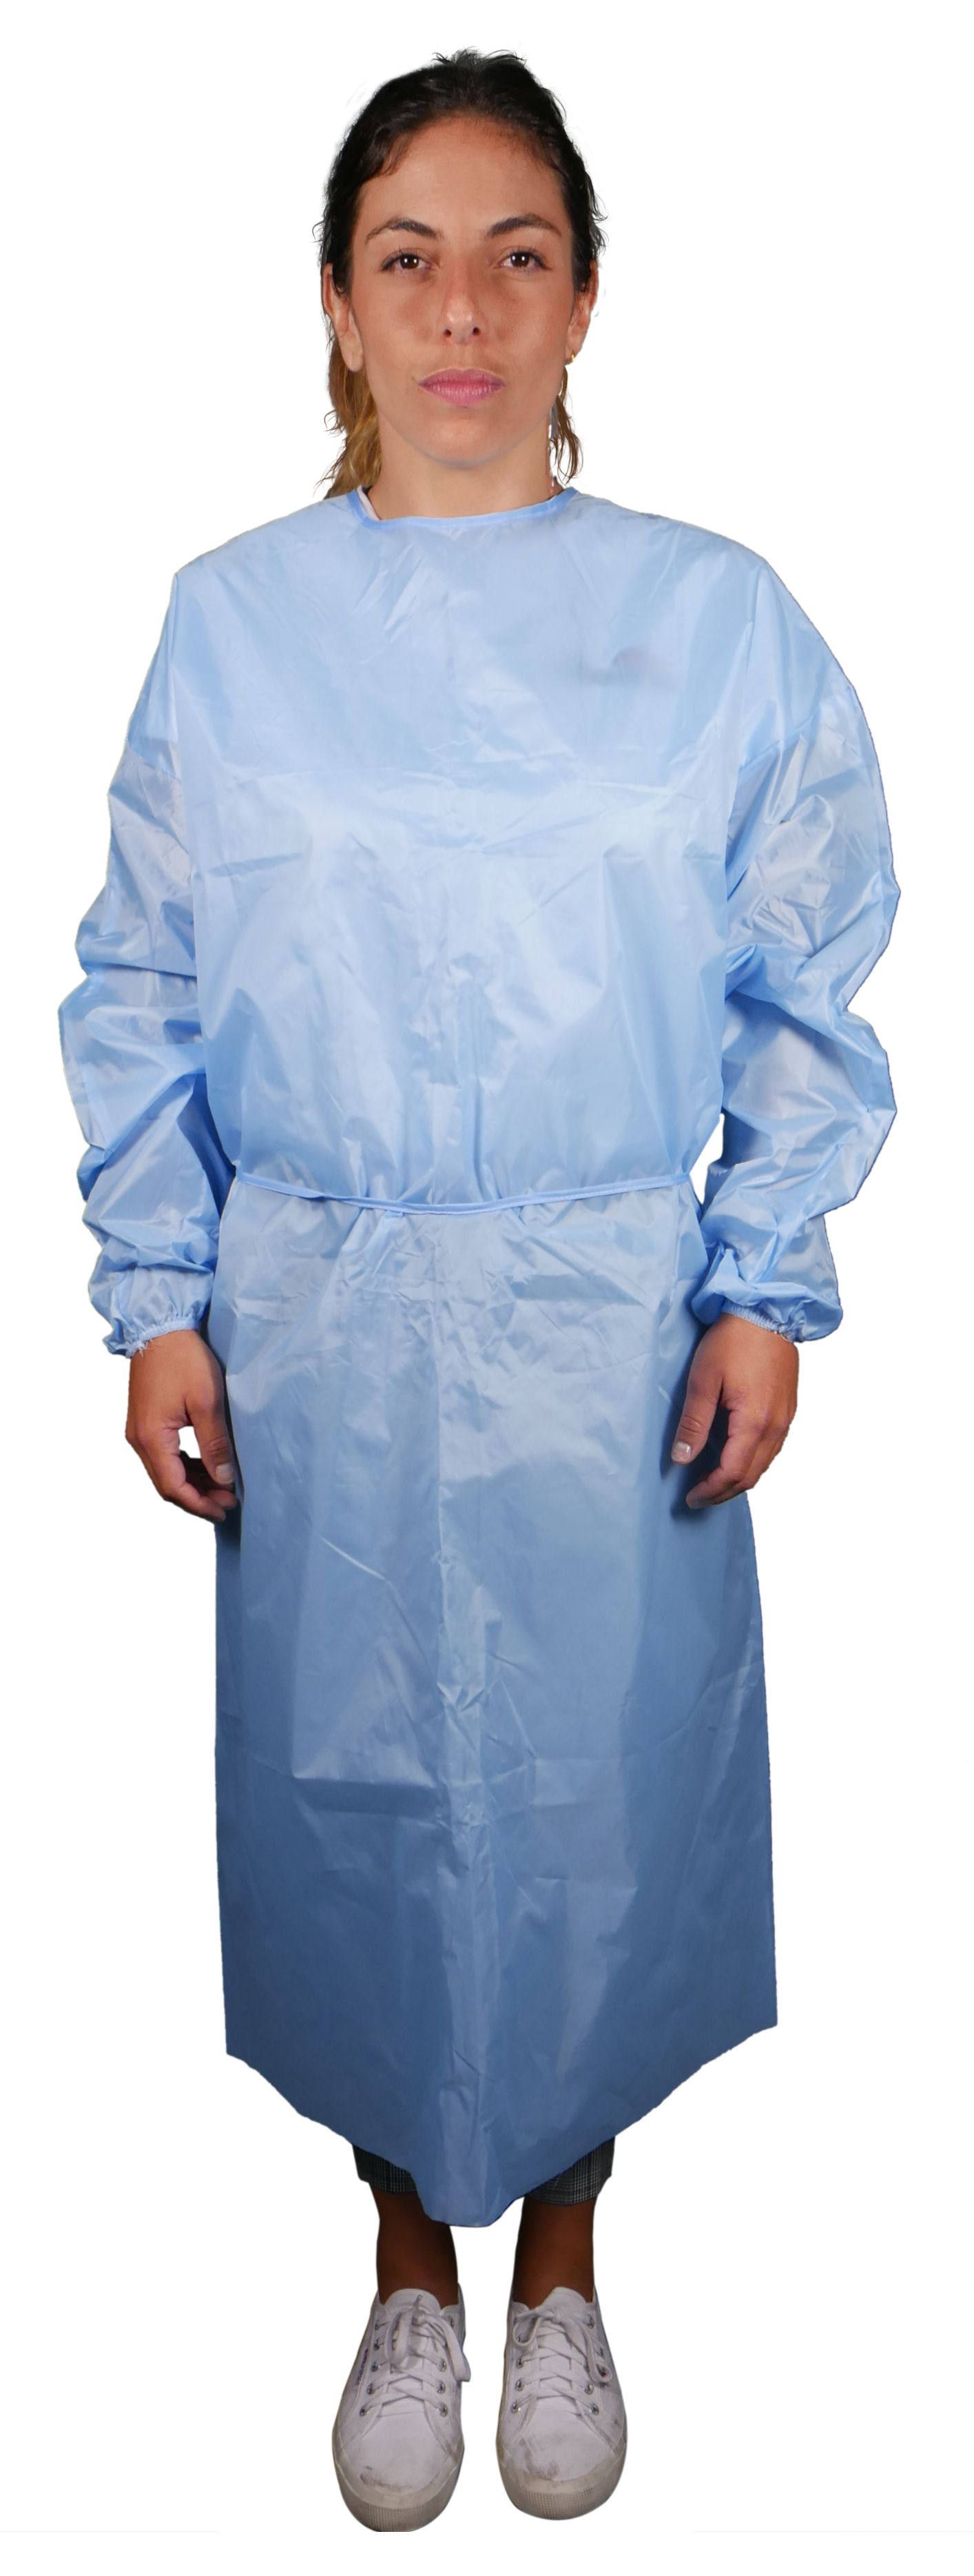 Non Surgical PPE Gowns $1.99 ea (Pack of 10)